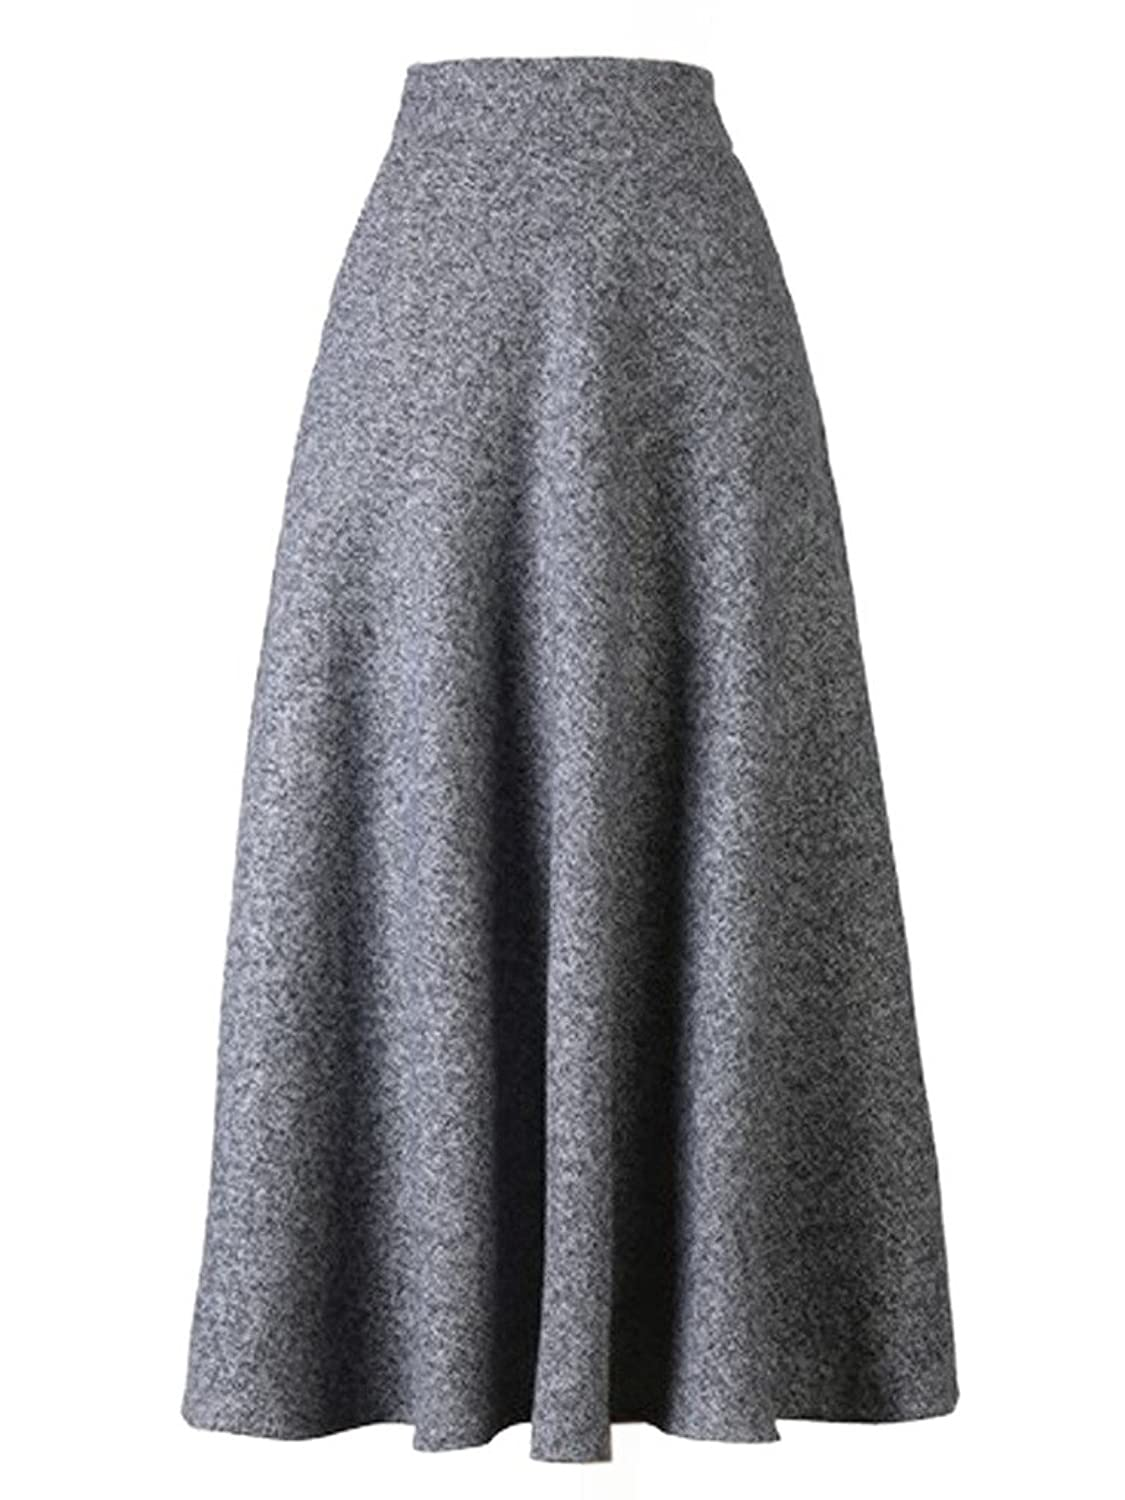 Edwardian Ladies Clothing – 1900, 1910s, Titanic Era Choies Womens High Waist A-line Flared Long Skirt Winter Fall Midi Skirt $33.99 AT vintagedancer.com